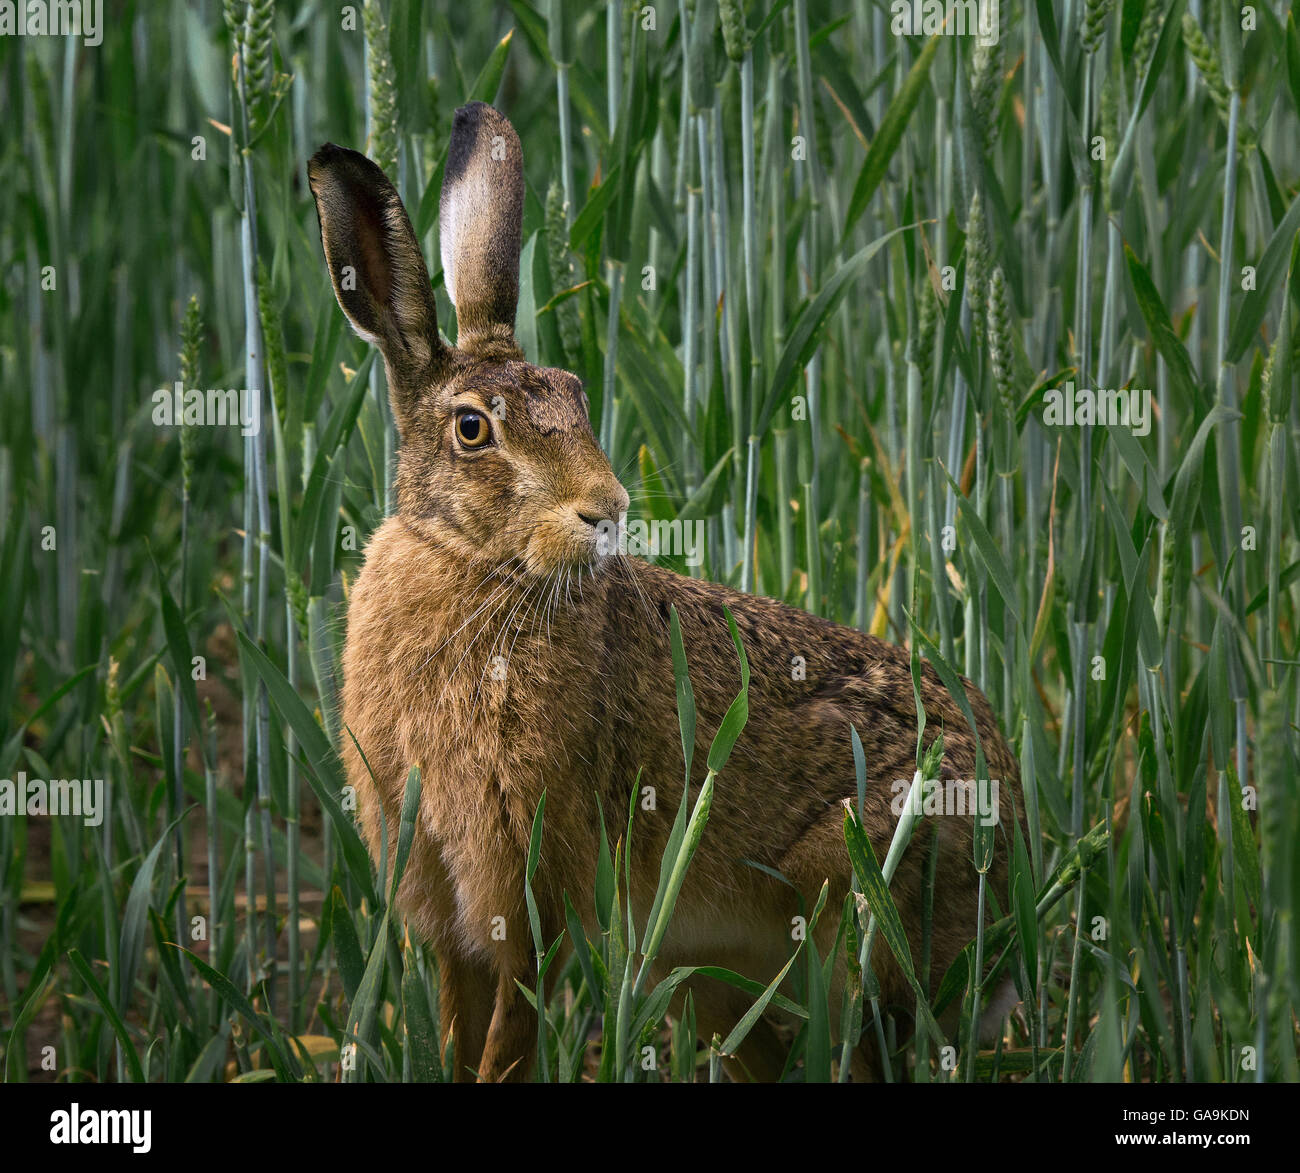 European Brown Hare, adult in barley field, Lancashire, UK - Stock Image